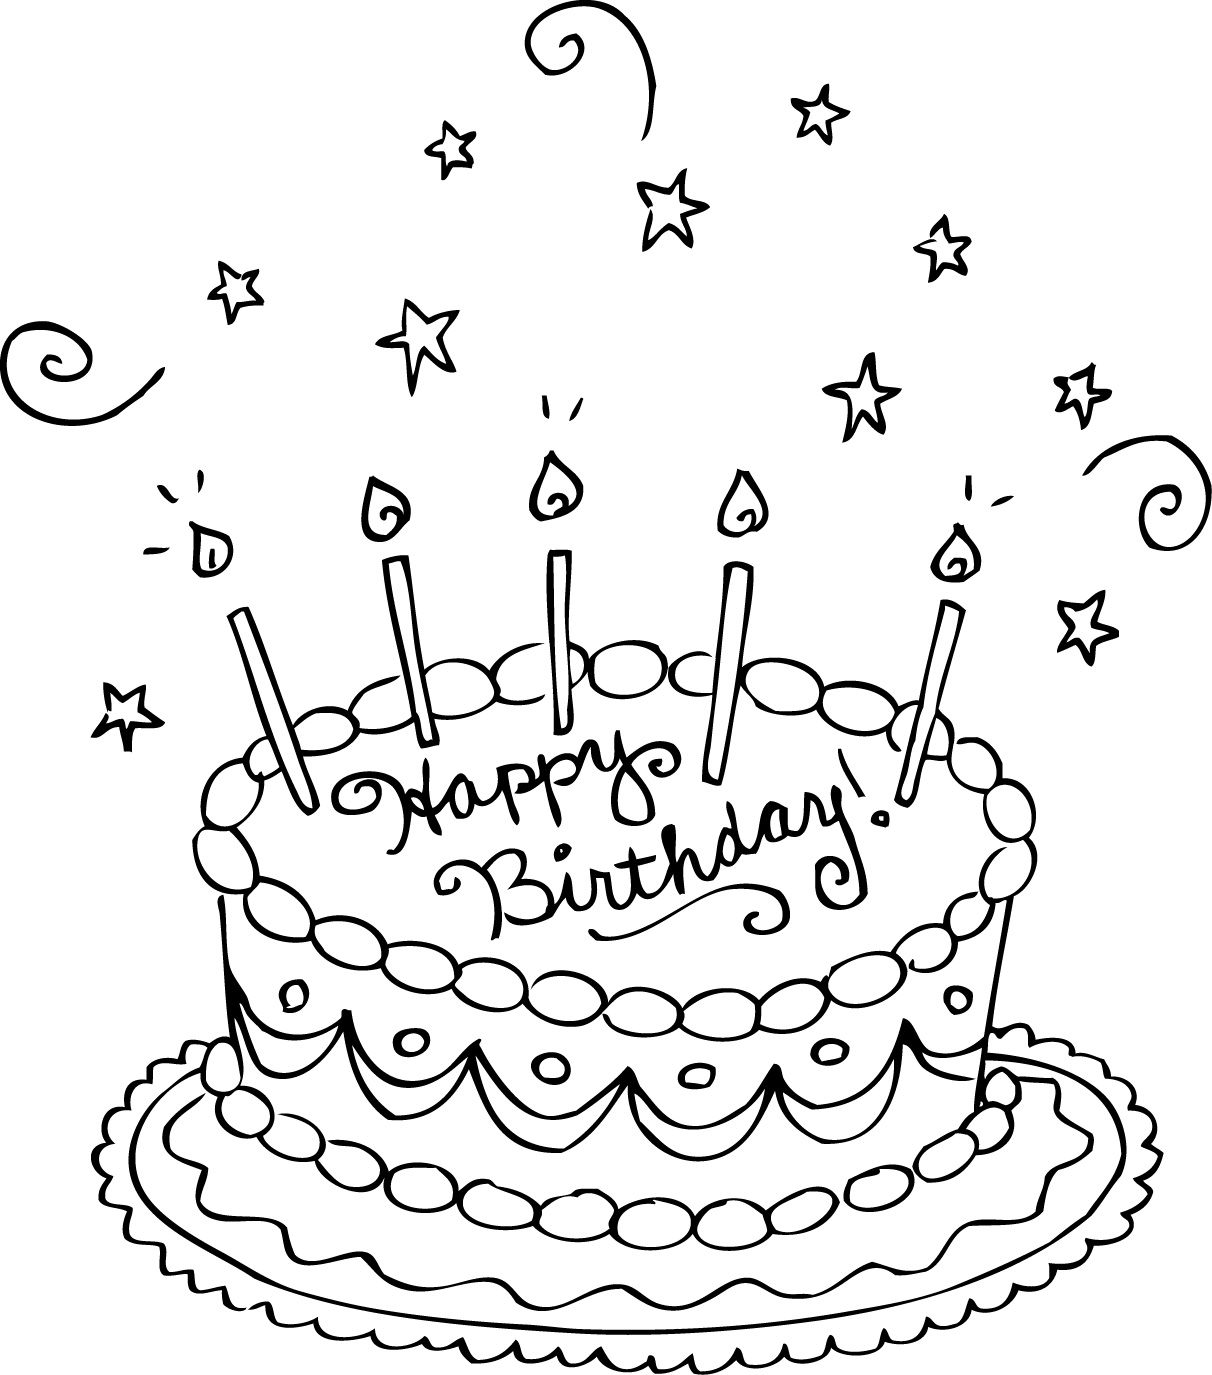 birthday cake to color slice of cake drawing at getdrawings free download birthday color to cake